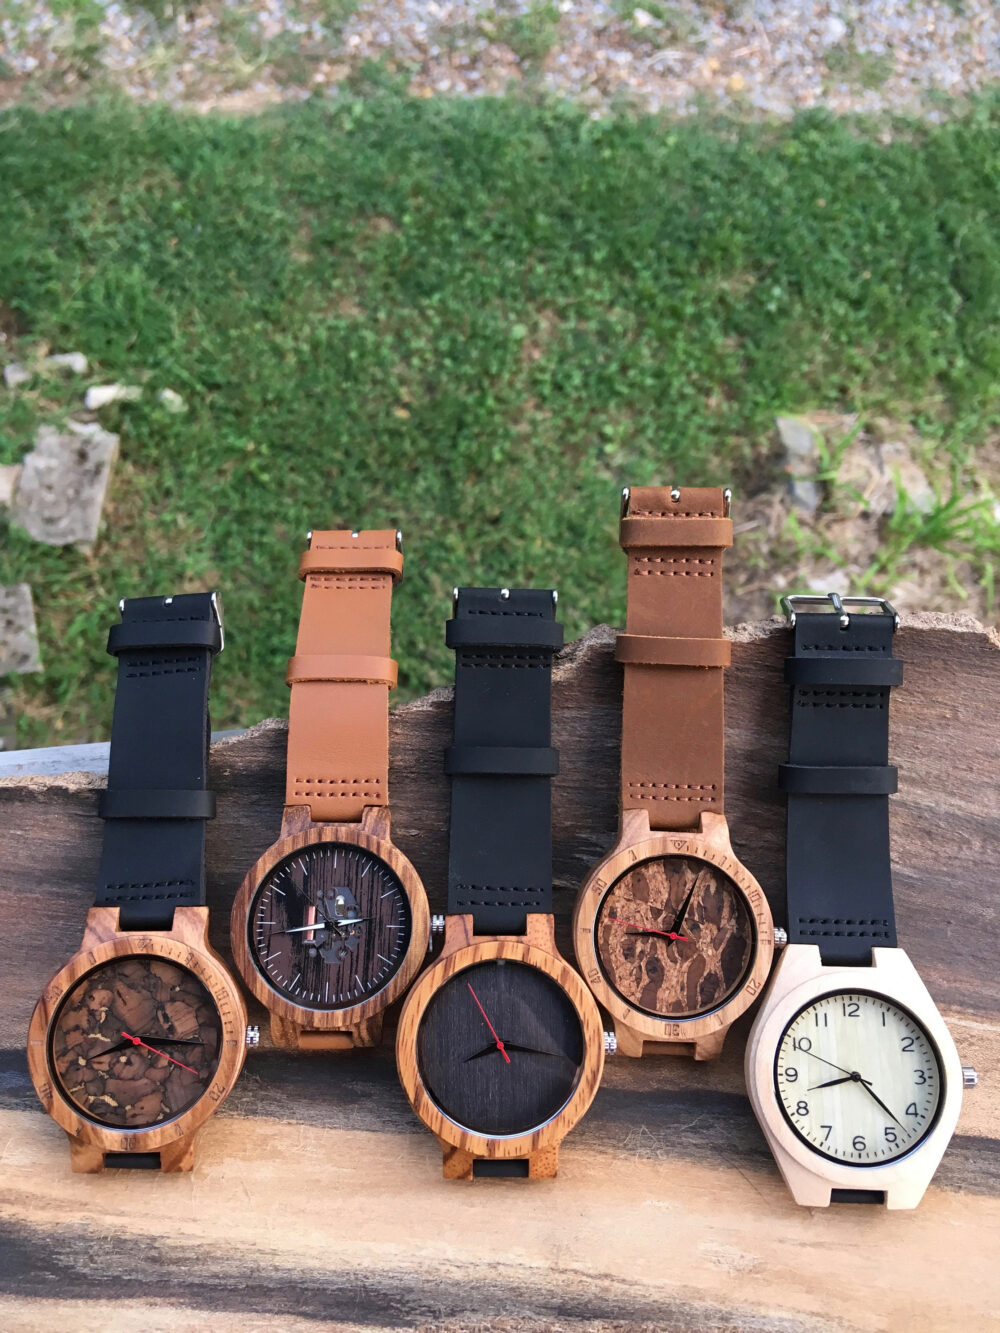 Personalized Wood Watch For Groom Groomsmen Party, Name Or Text Engraving, Leather Band, Wedding, Bridal, Birthday, Grooms Gift Christmas